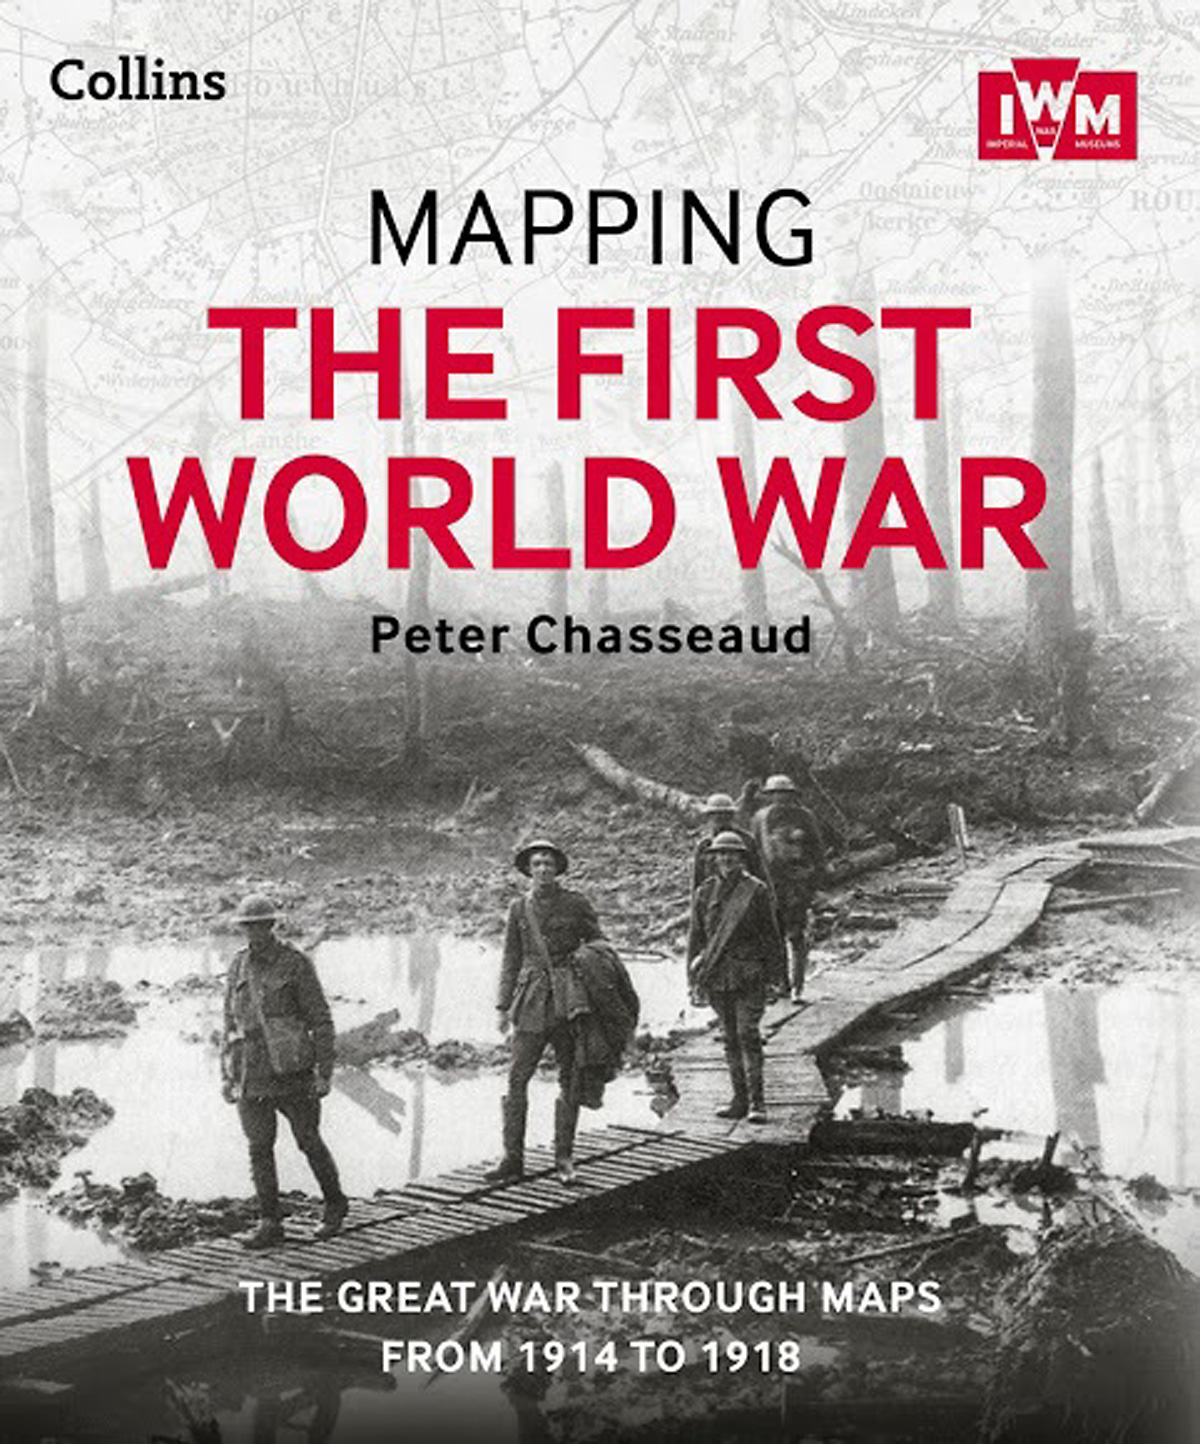 Mapping The First World War, by Dr Peter Chasseaud. The Great War Through Maps From 1914 To 1918.